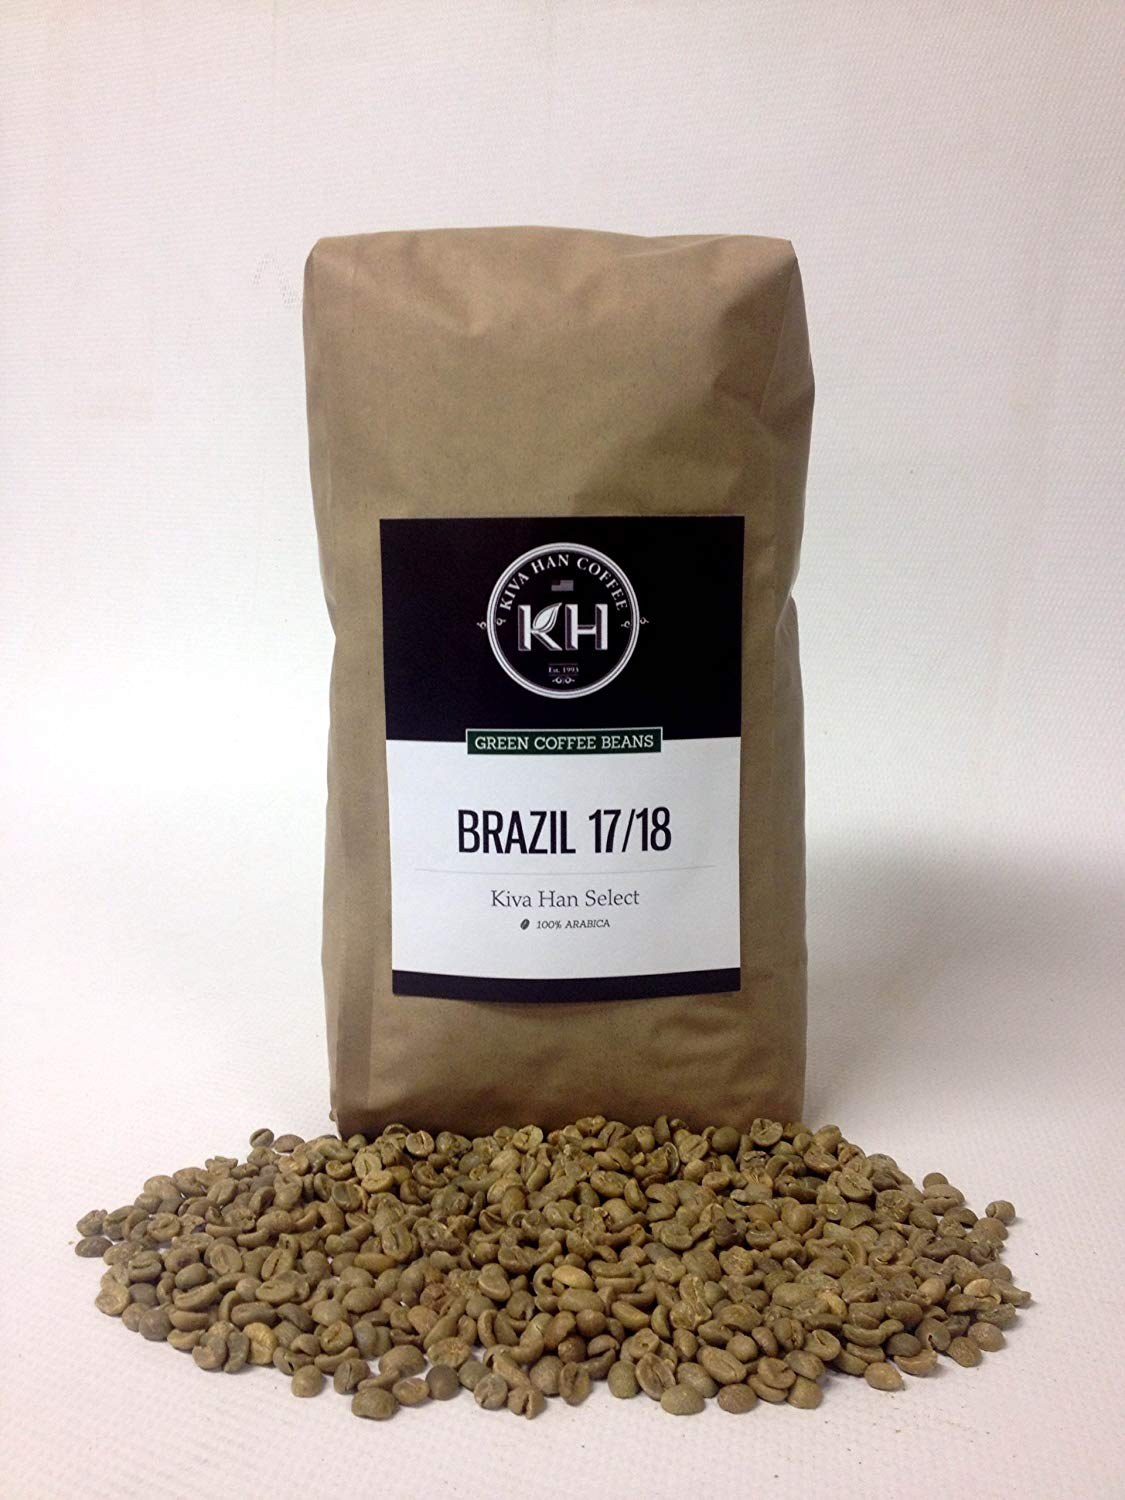 Brazil 17/18 Green Unroasted Coffee Beans, 5 Lb Bag